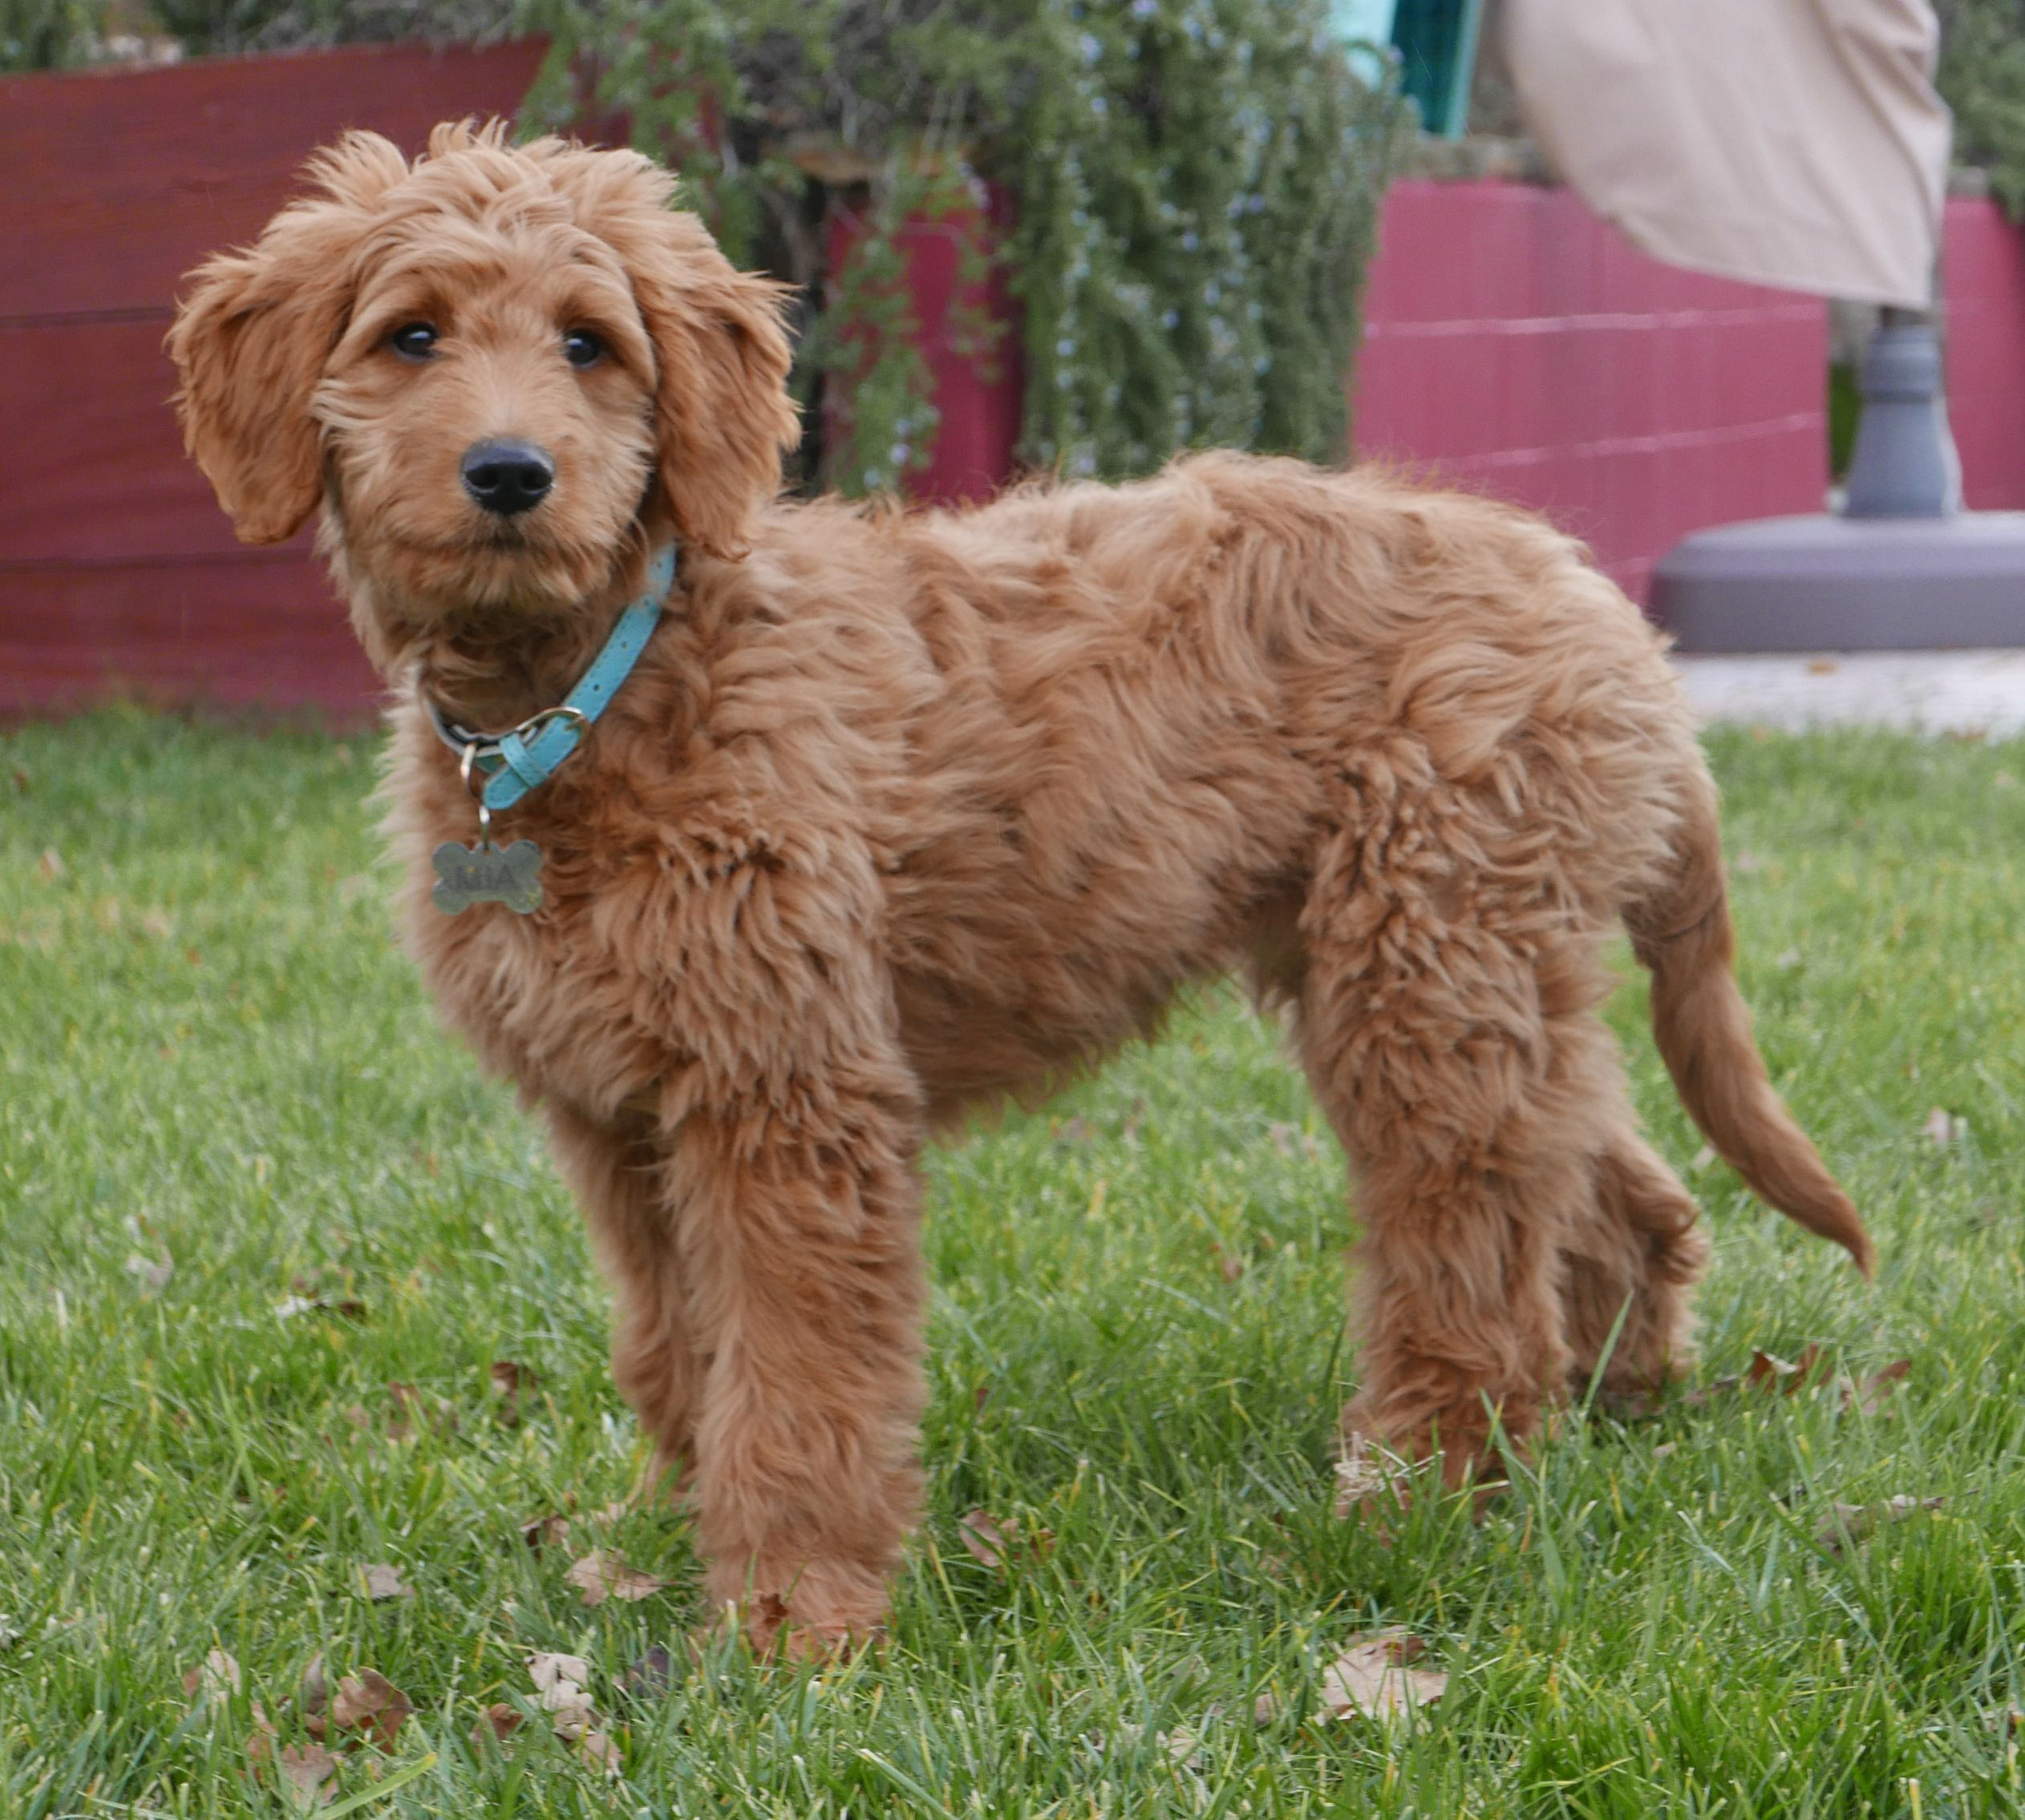 Goldendoodle Wikipedia Golden Retriever Poodle Mix Stock Photos Golden Retriever The Miniature Golden R In 2020 Aussiedoodle Goldendoodle Golden Retriever Poodle Mix